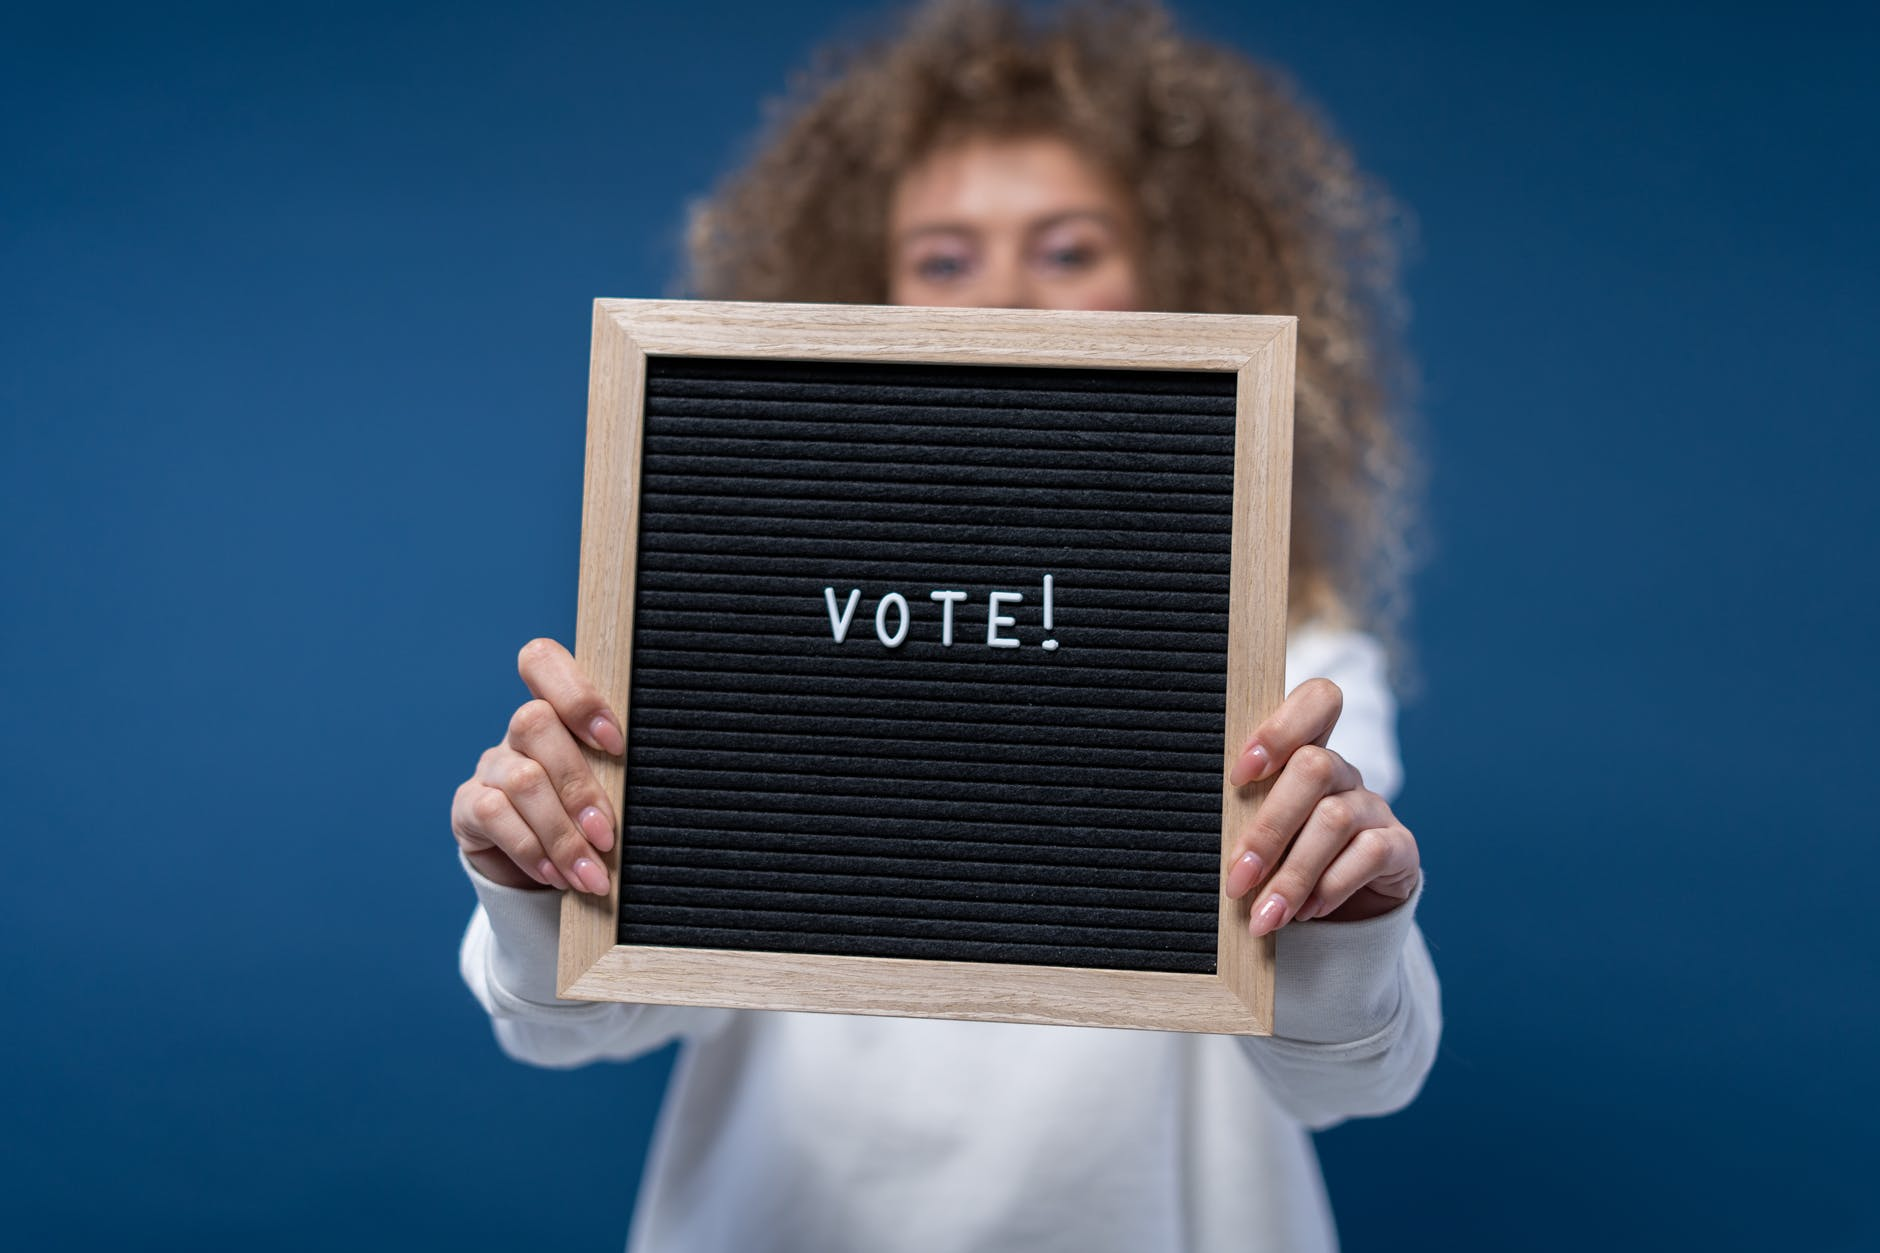 person holding a vote sign